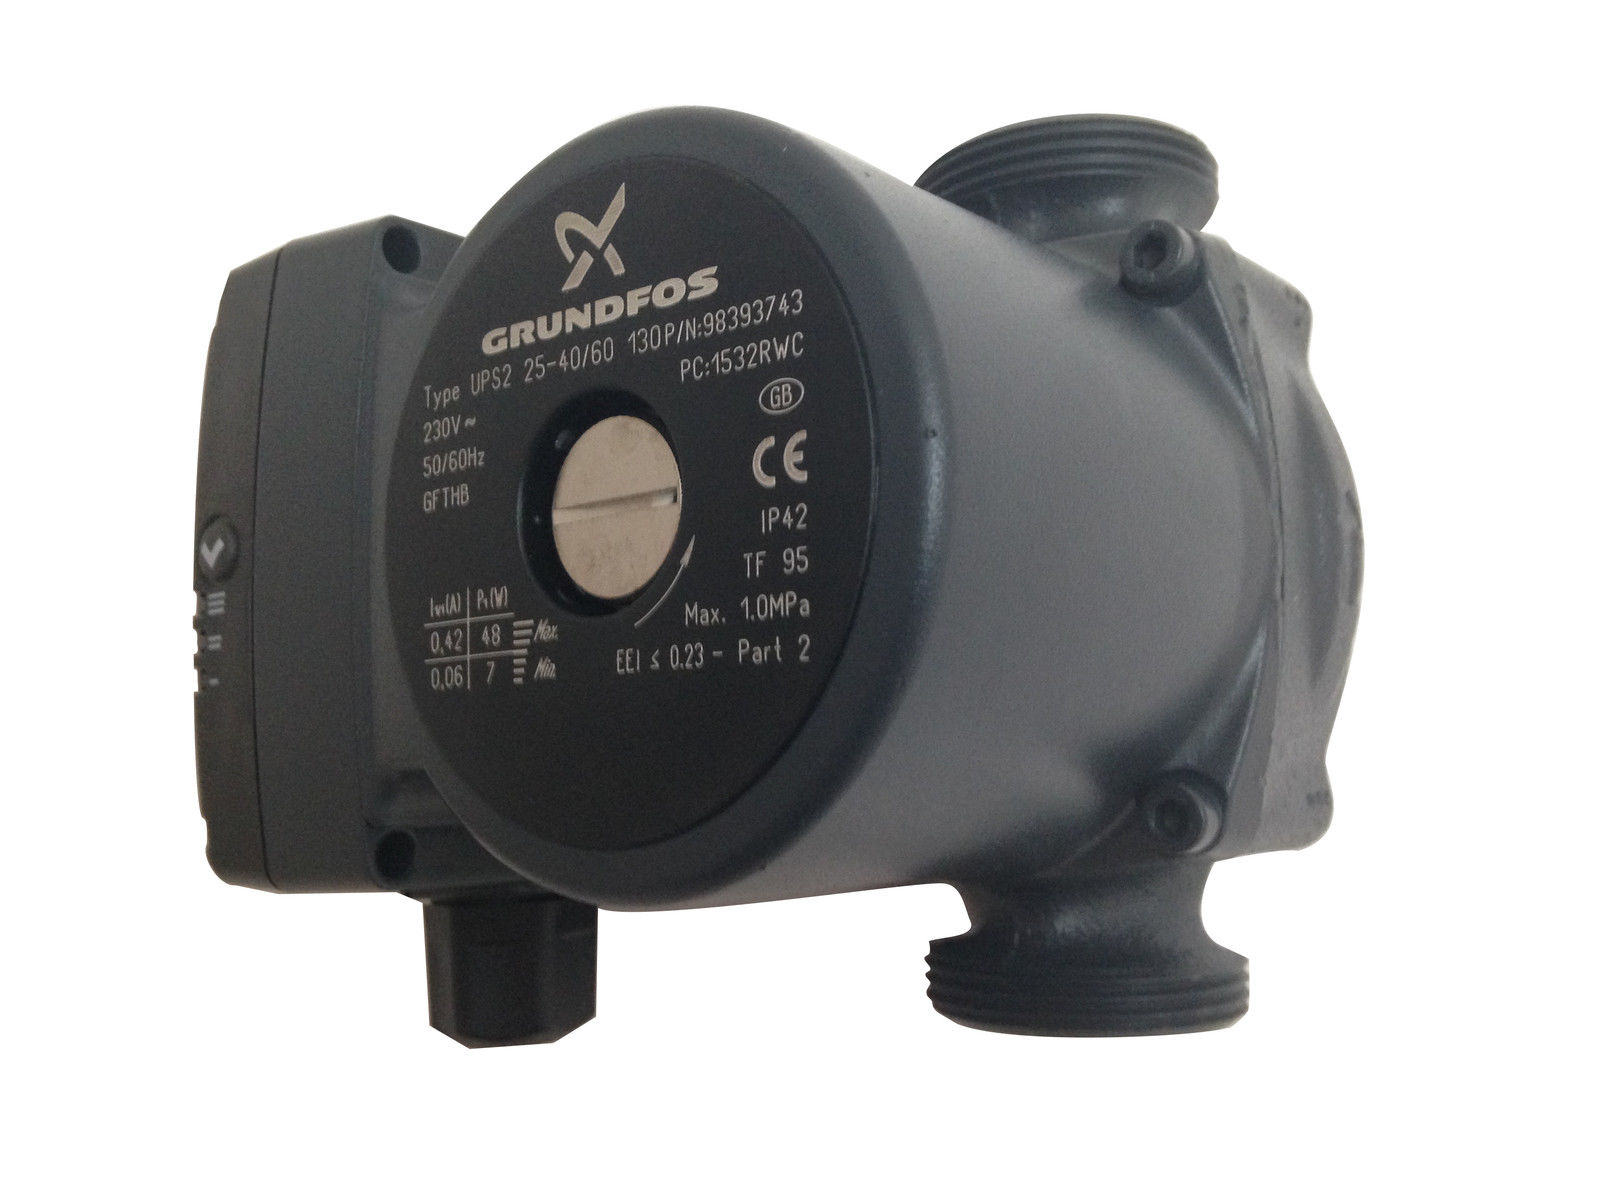 grundfos ups2 pump replacement spare part for hot cold plumbing services ebay. Black Bedroom Furniture Sets. Home Design Ideas